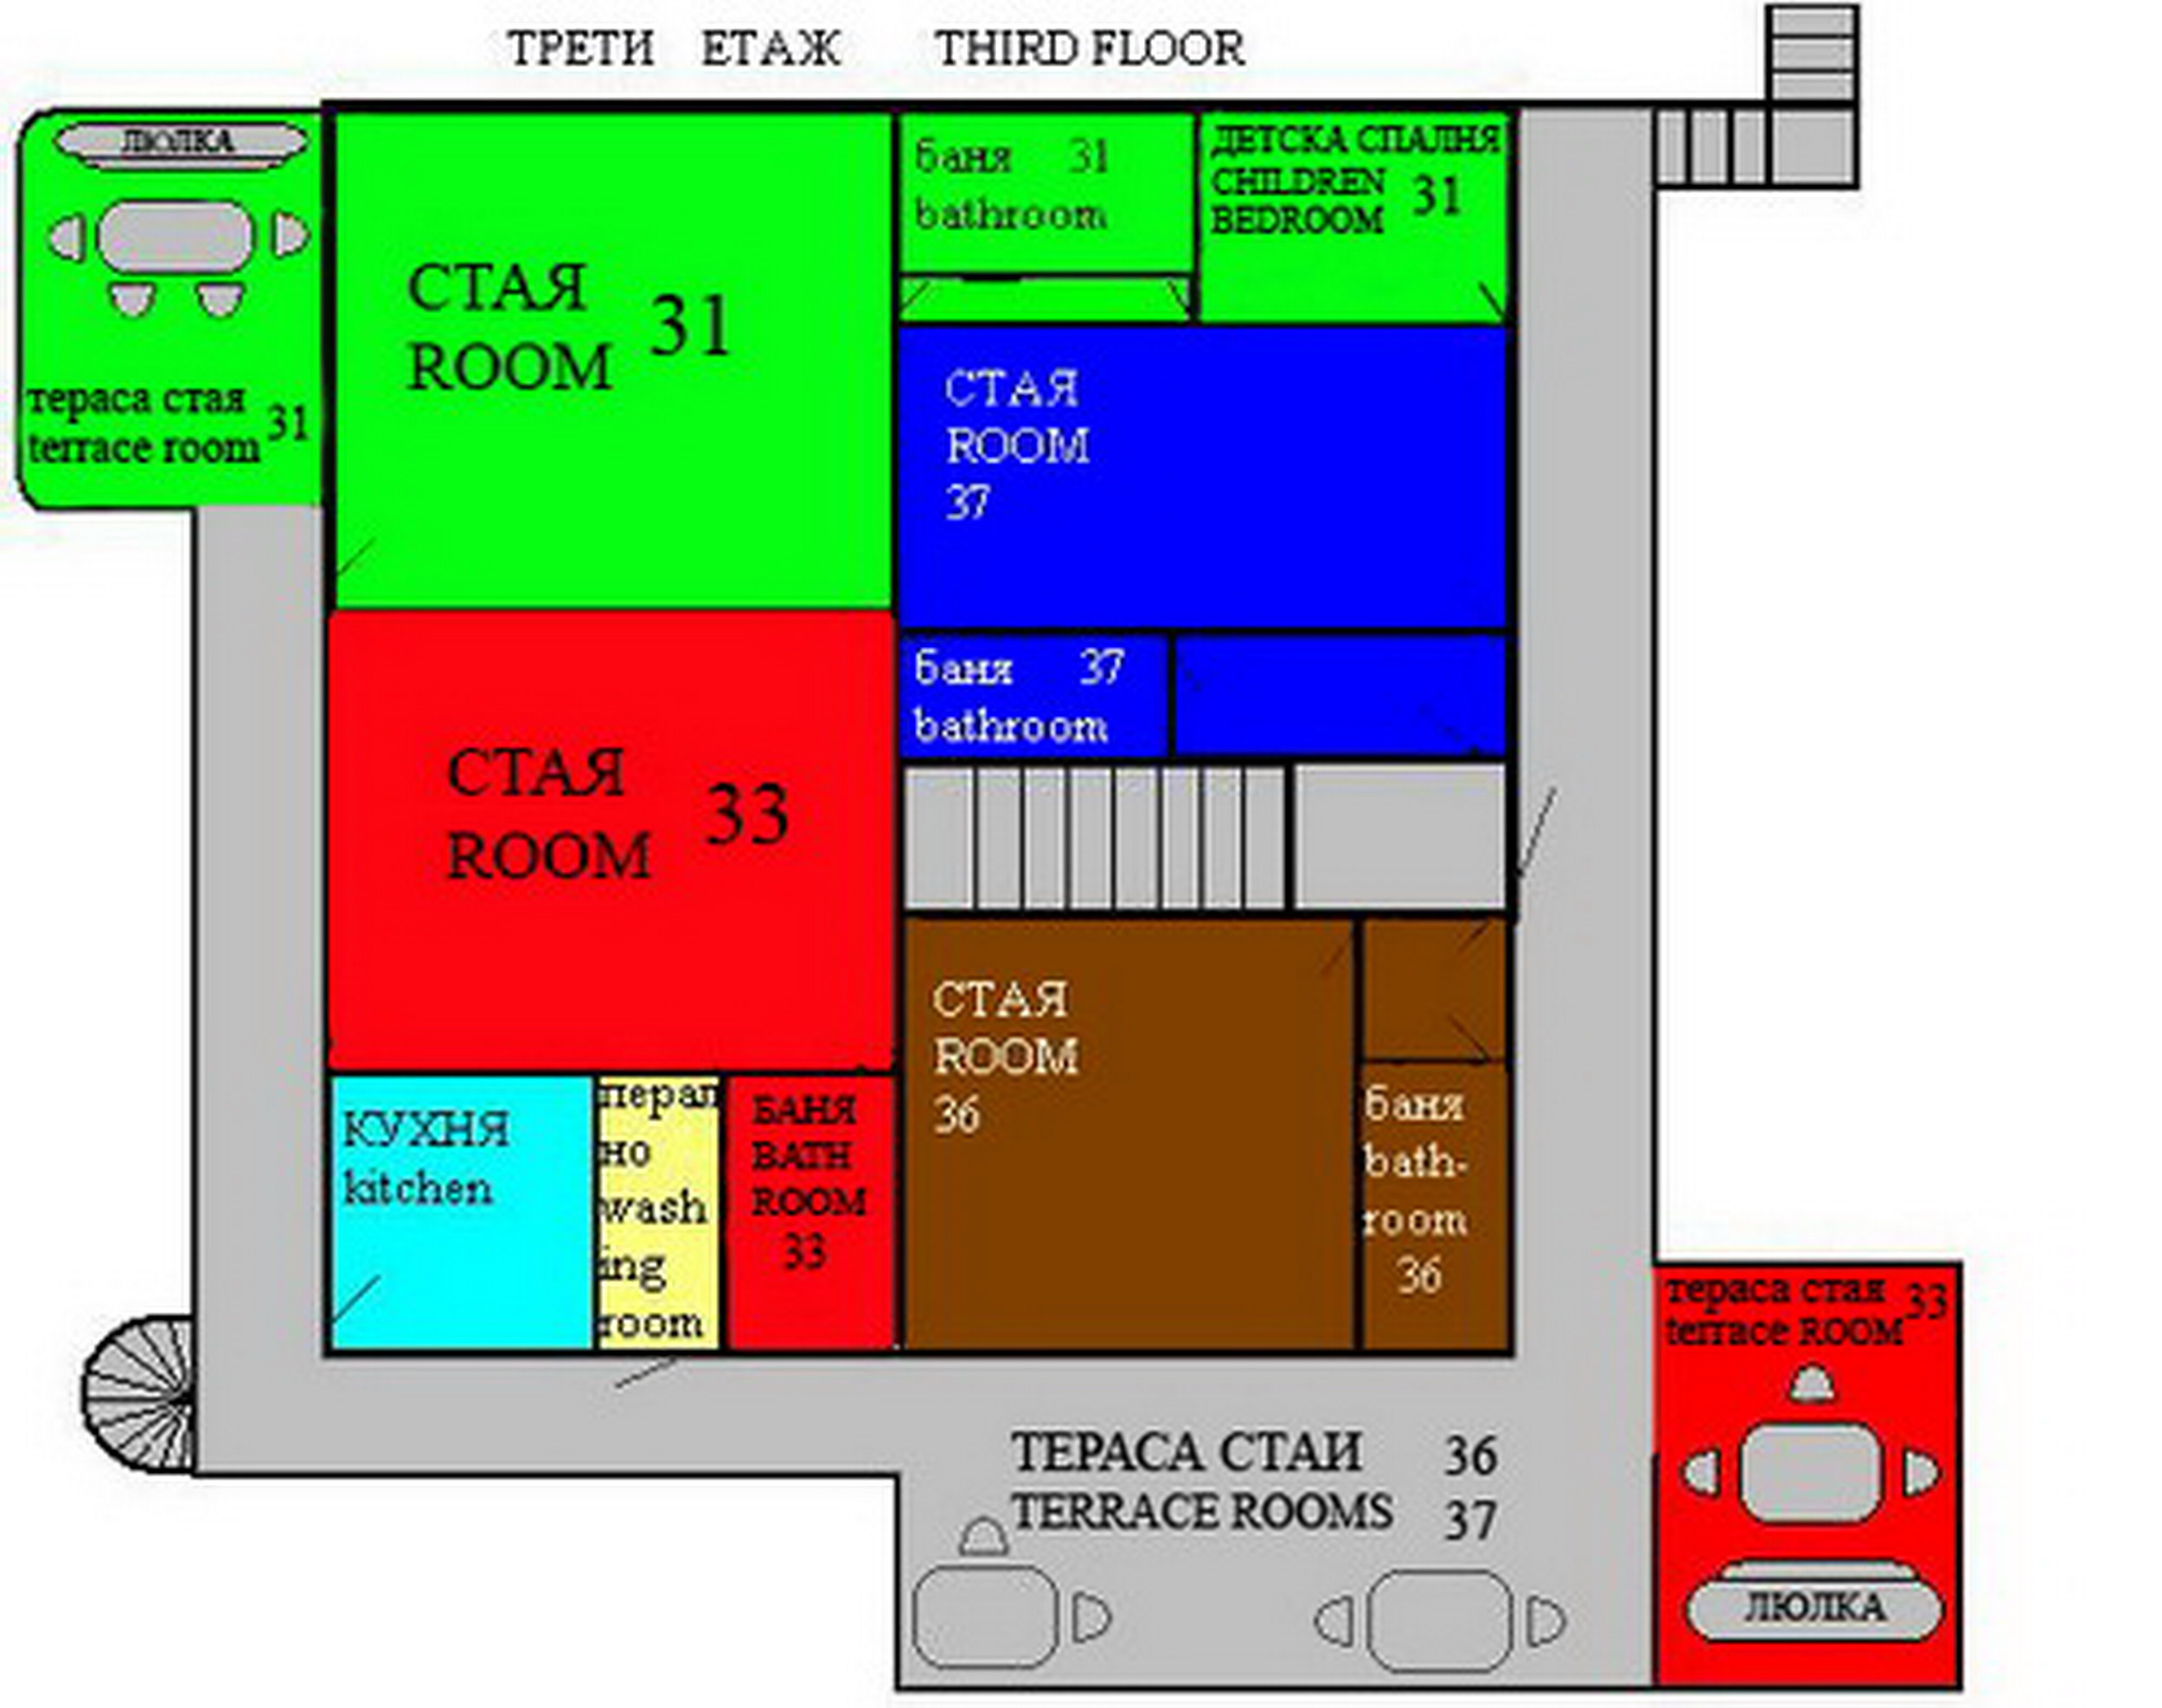 THIRD FLOOR_2mb